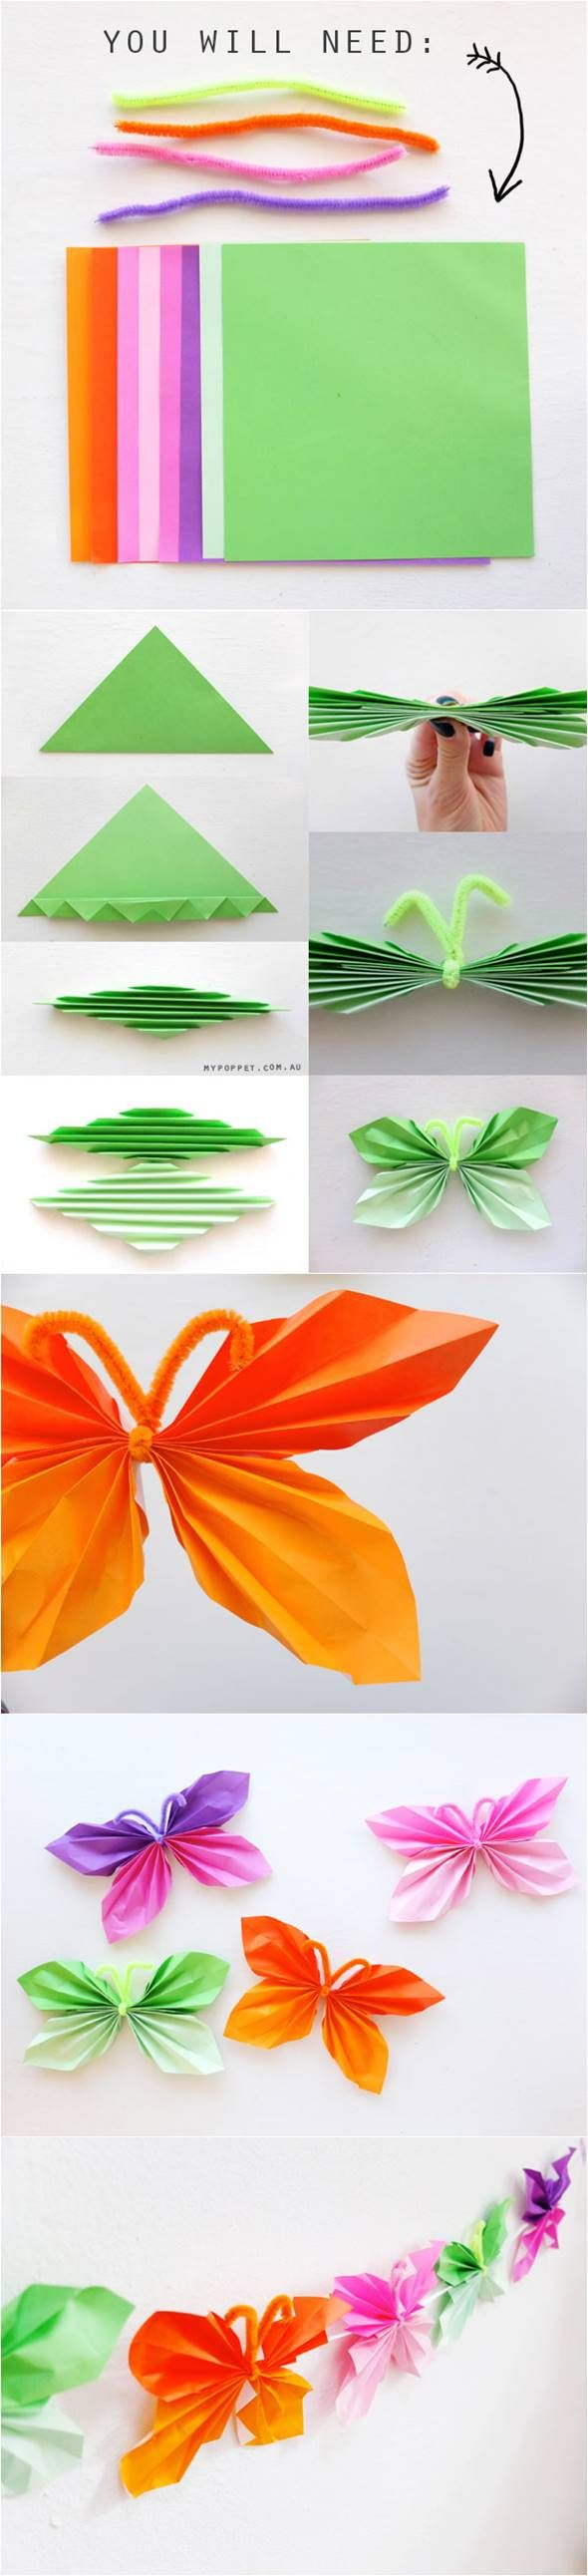 How To Fold Easy Paper Butterflies #craft #decor #paper #butterfly